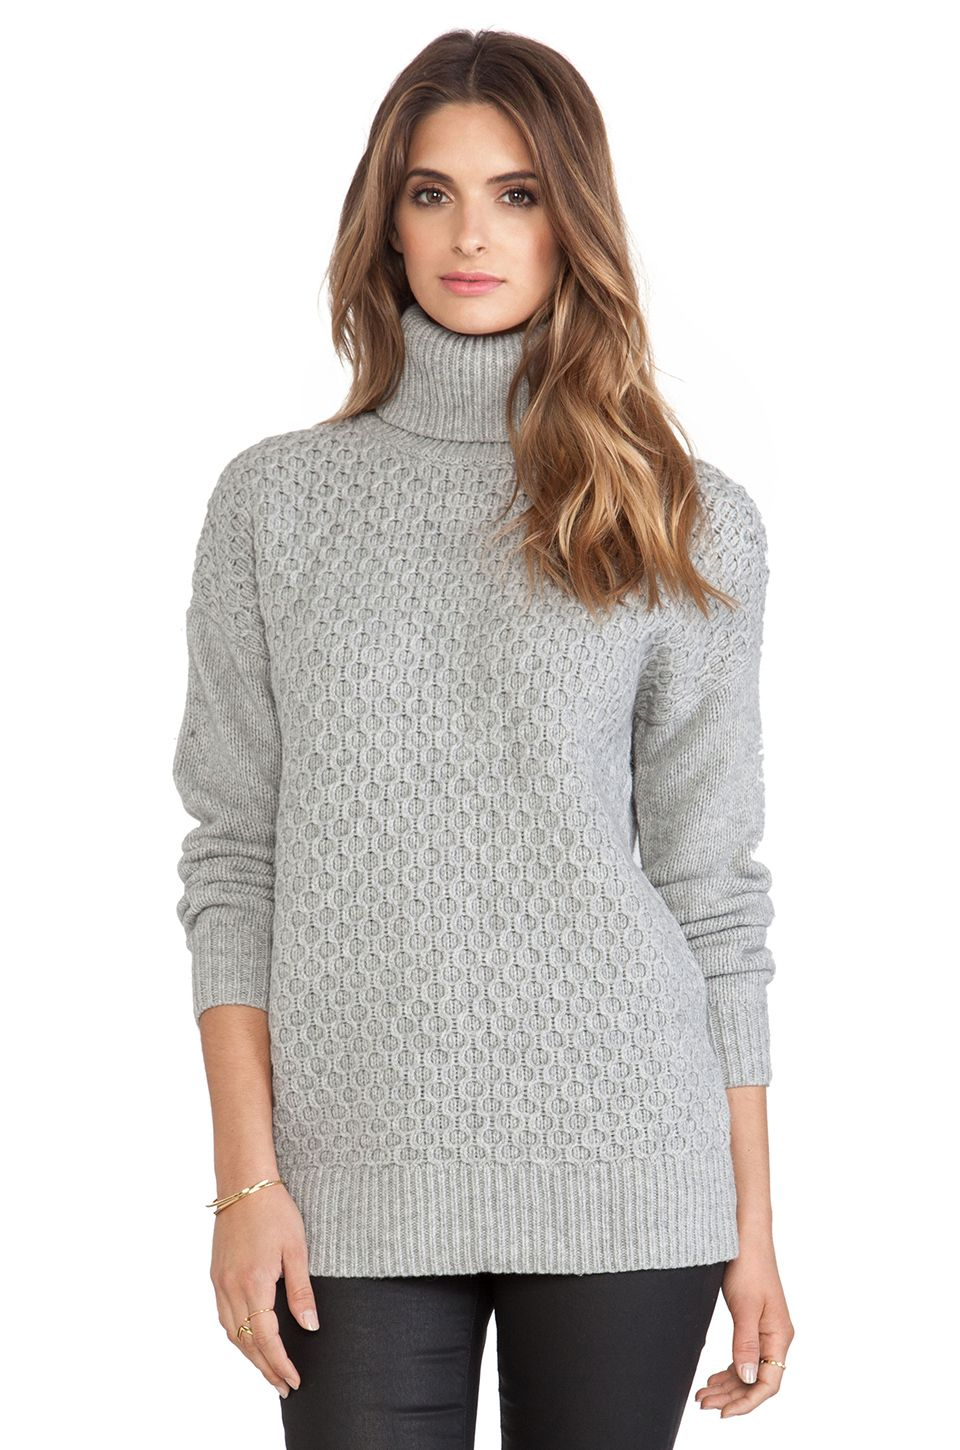 REVOLVEclothing | Pullovers | Pinterest | Demylee, Gray color and ...